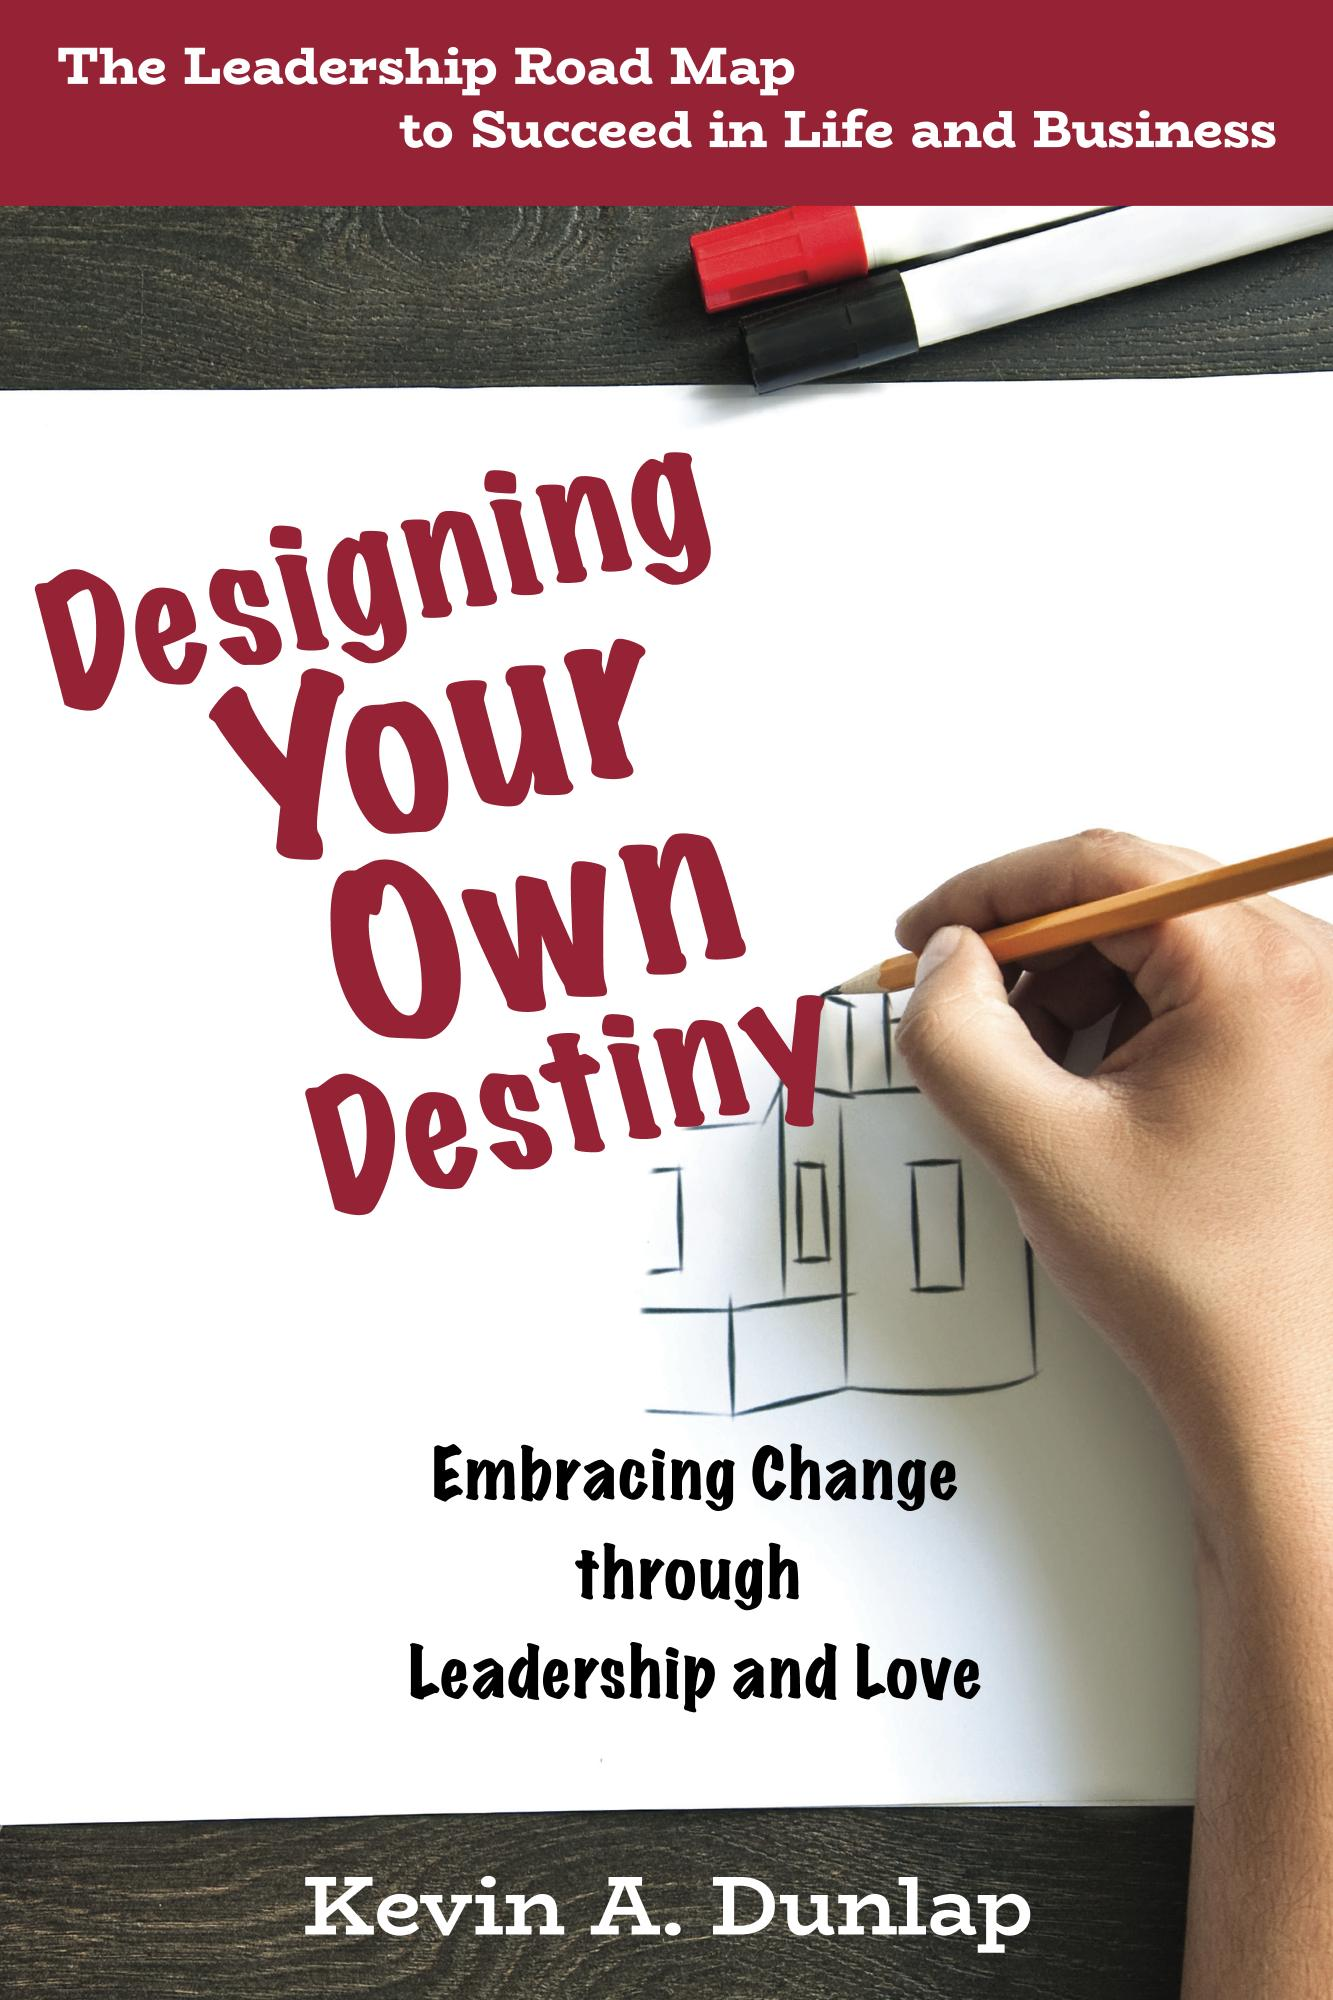 Designing_Your_Own_D_Cover_for_Kindle